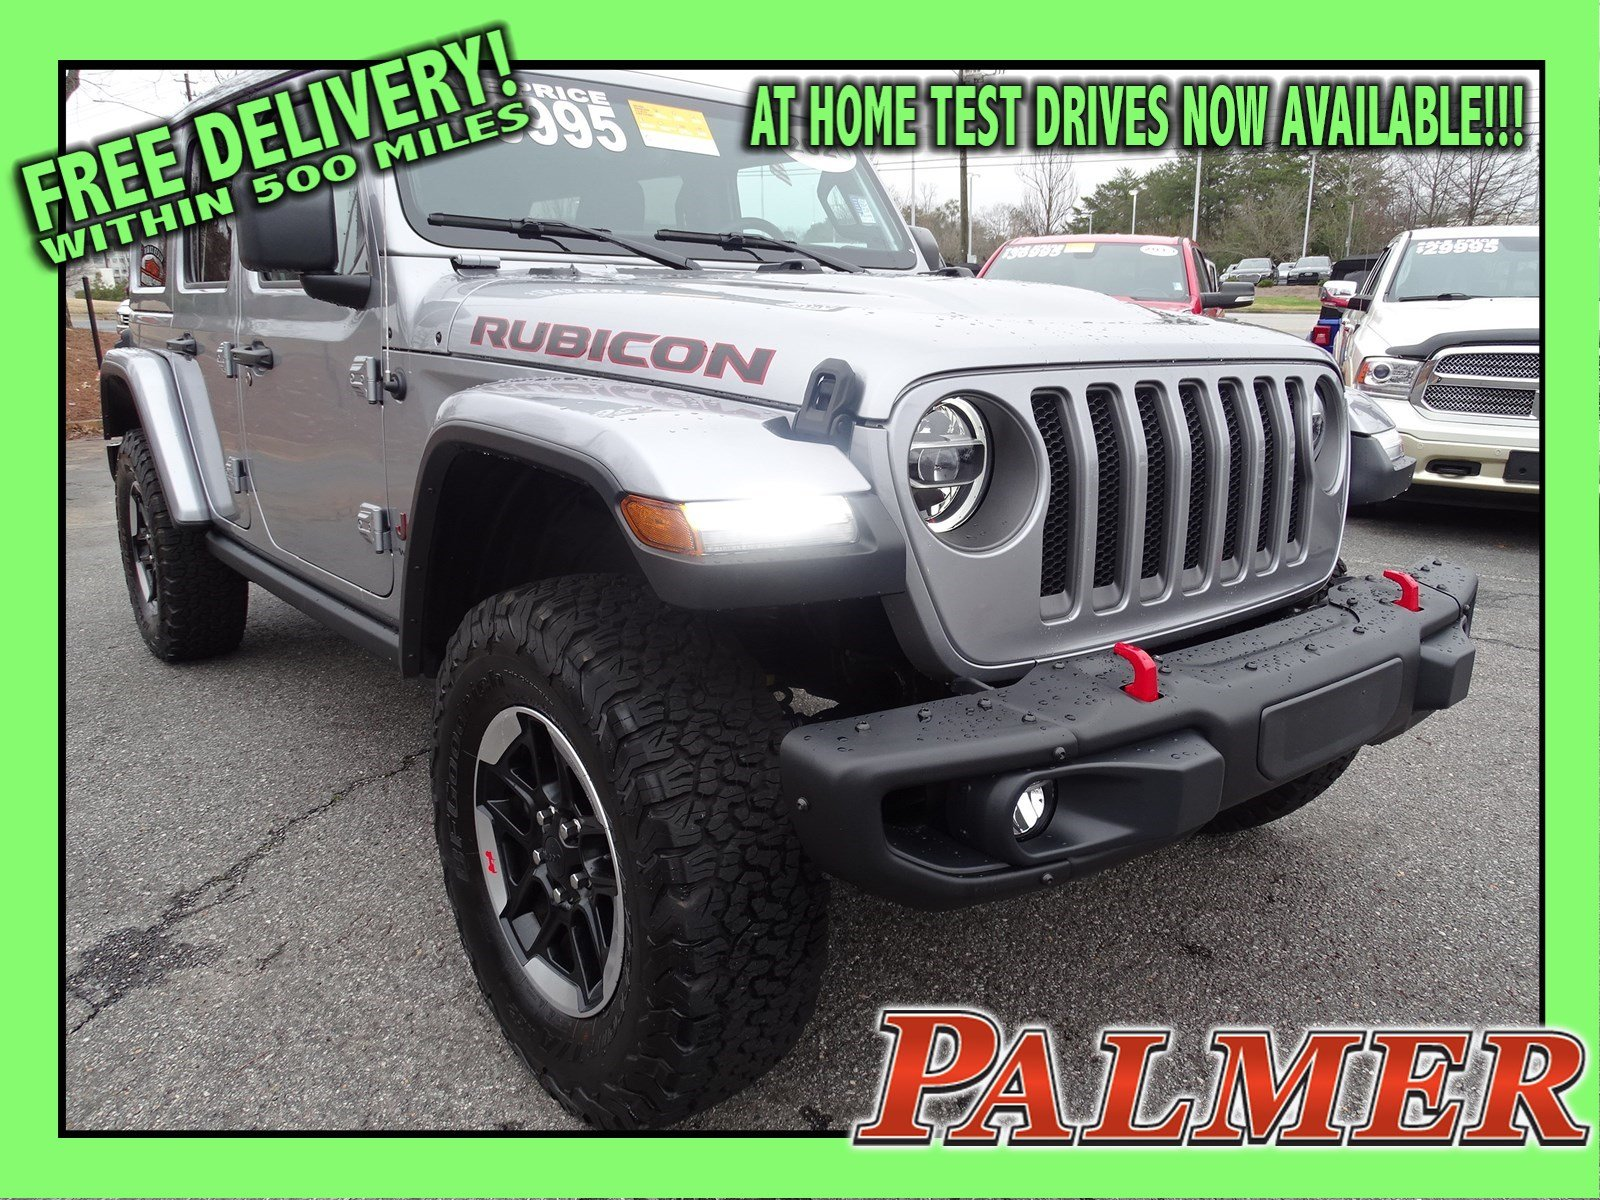 Certified Pre-Owned 2020 Jeep Wrangler Unlimited Rubicon